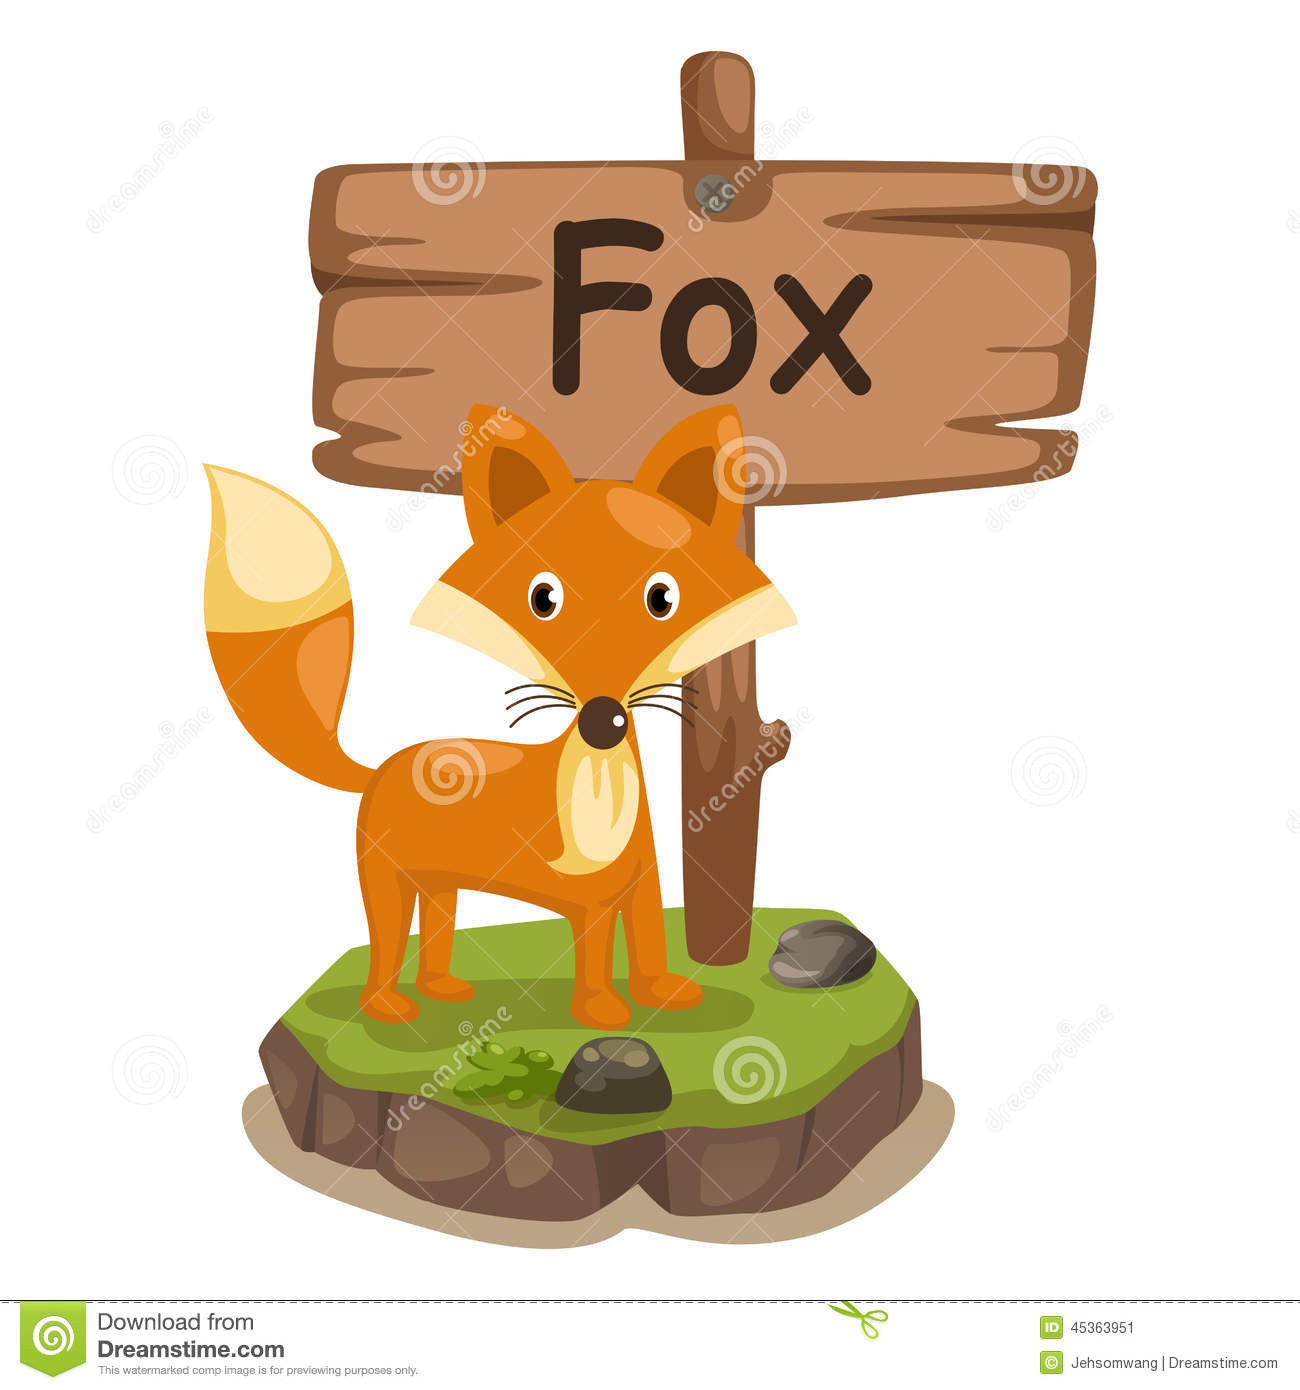 Fabuleux Animal Alphabet Letter F For Fox Stock Vector - Image: 45363951 SL99